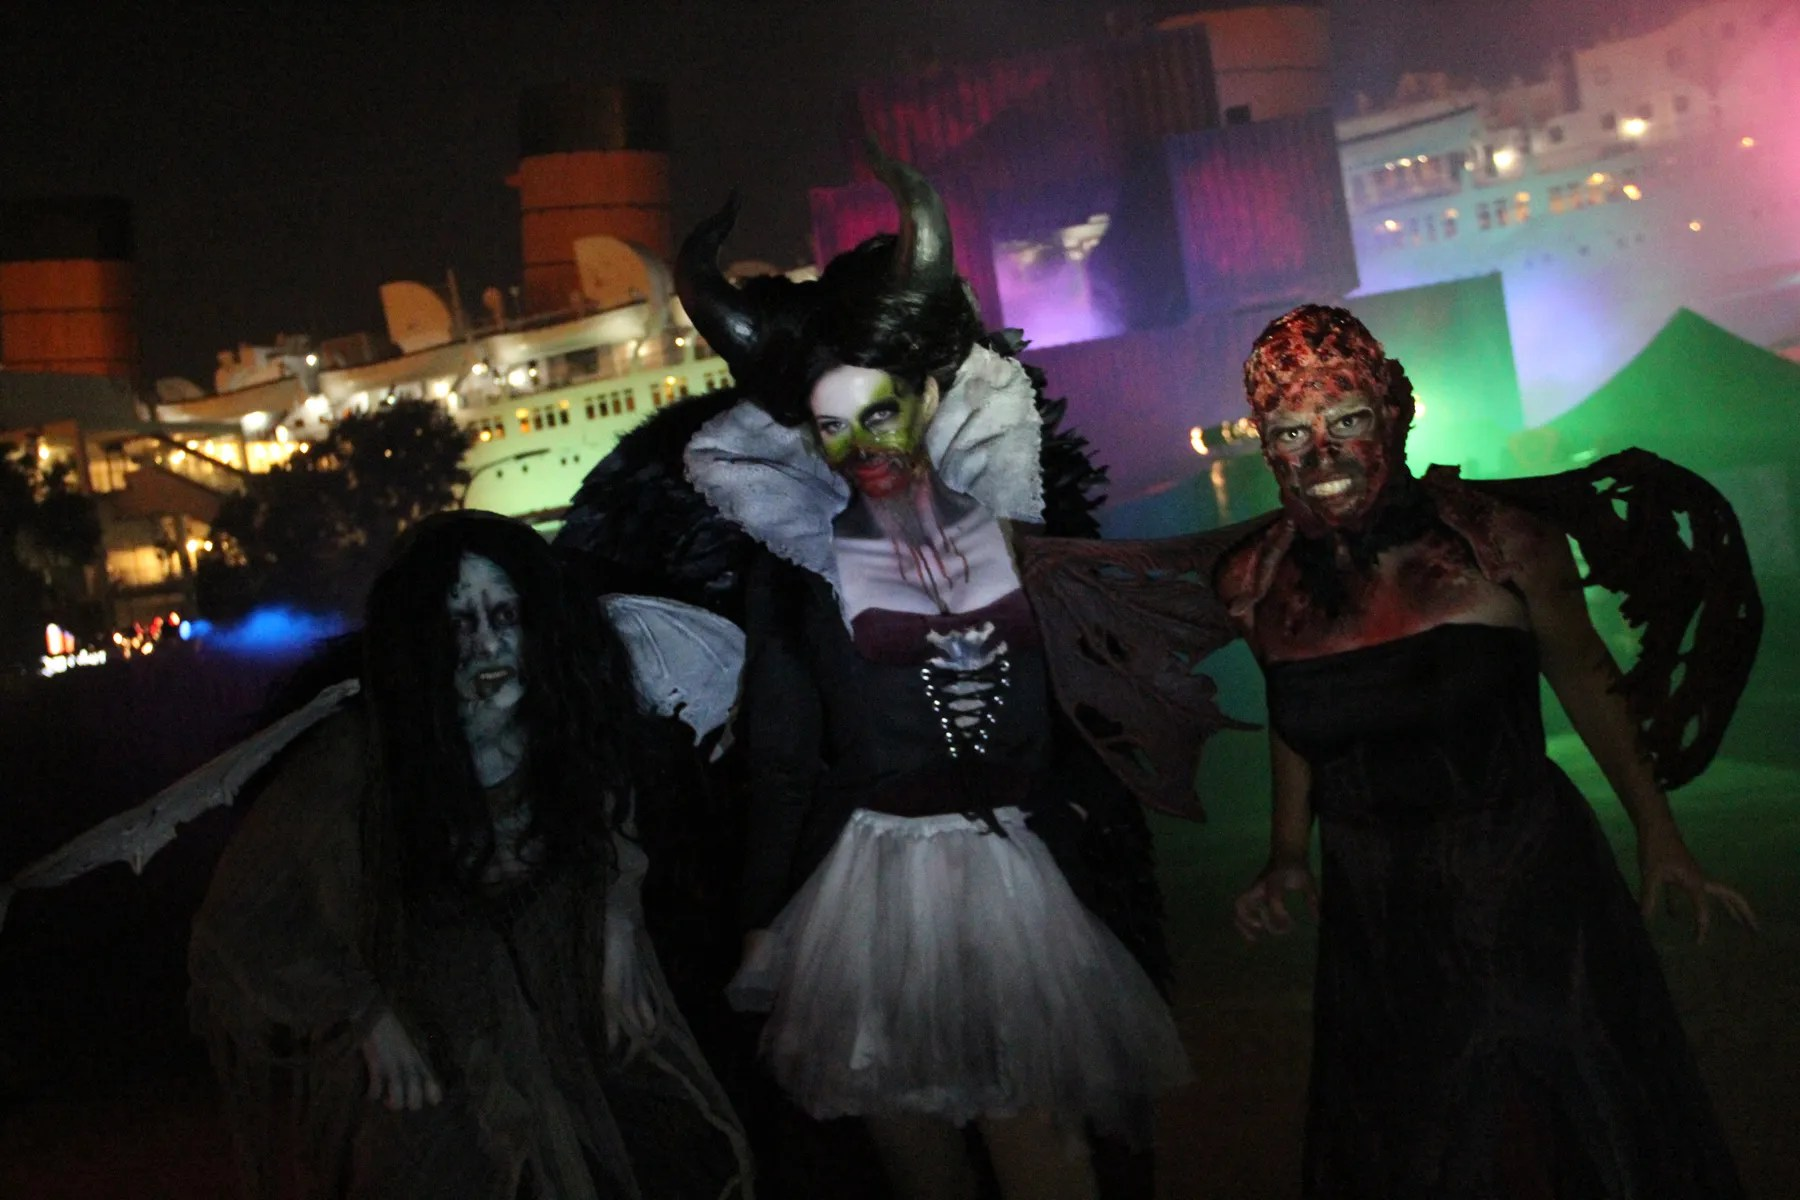 Queen Mary Dark Harbor | Hollywood Gothique